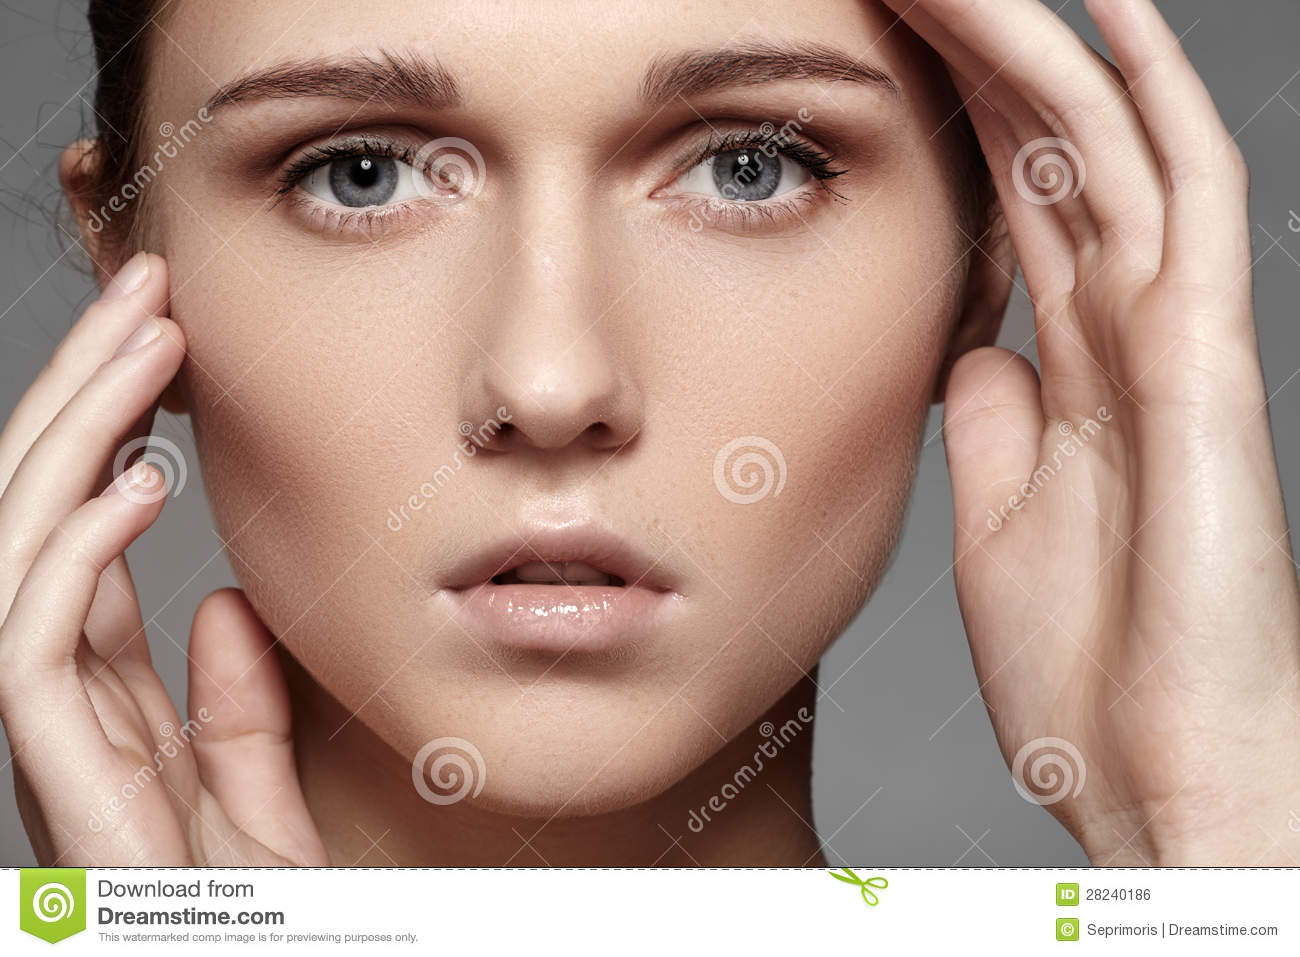 beauty-skincare-natural-make-up-woman-model-face-pure-skin-clean-visage-28240186.jpg